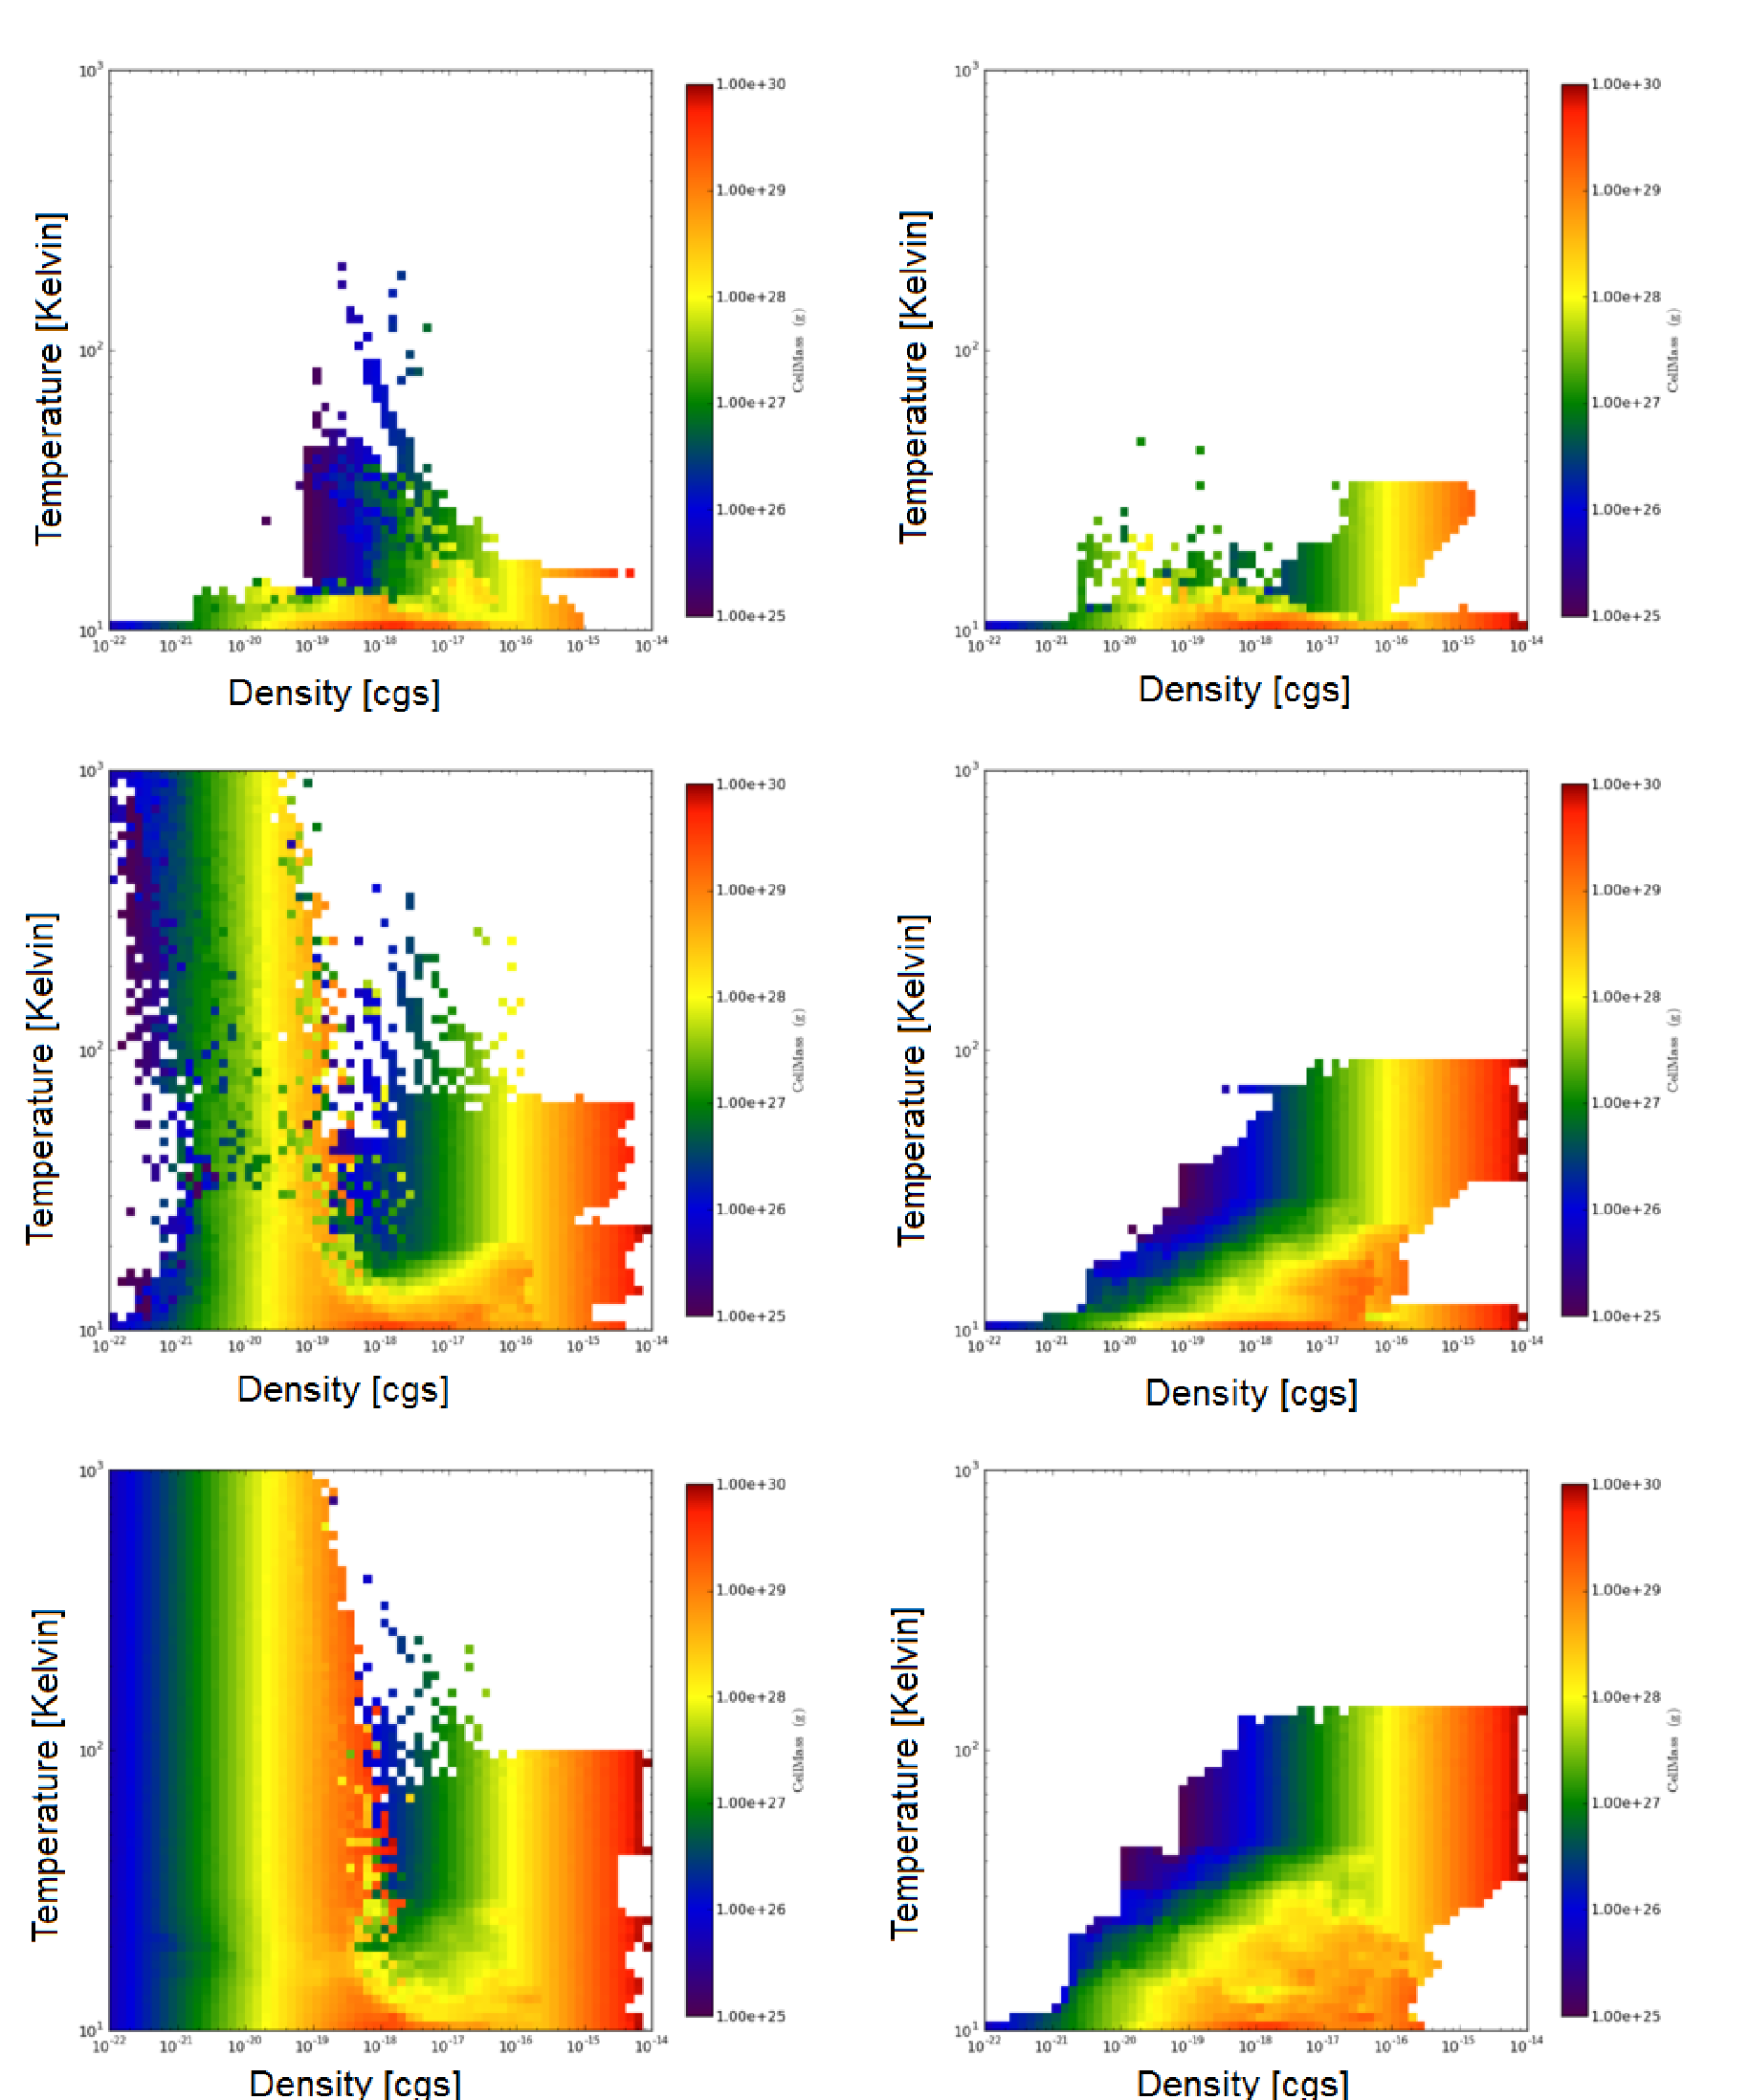 Phase plot showing total gas mass as a function of temperature (y-axis) and density (x-axis) for radiative simulations with (left) and without (right) winds. Phase plots are taken at times of 0.25, 0.5 and 0.75